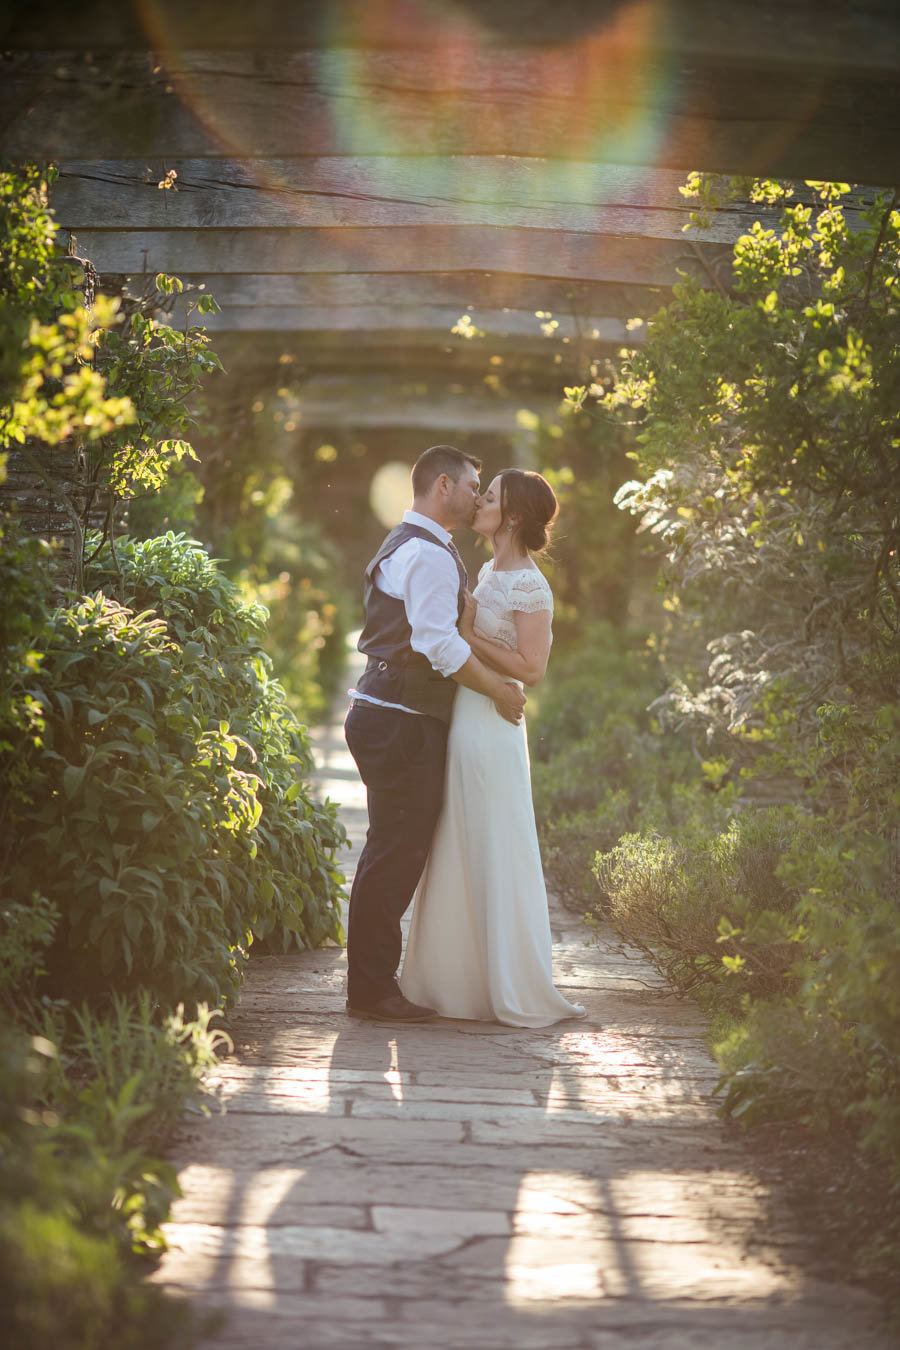 Hestercombe Gardens Wedding Photo in summer evening light